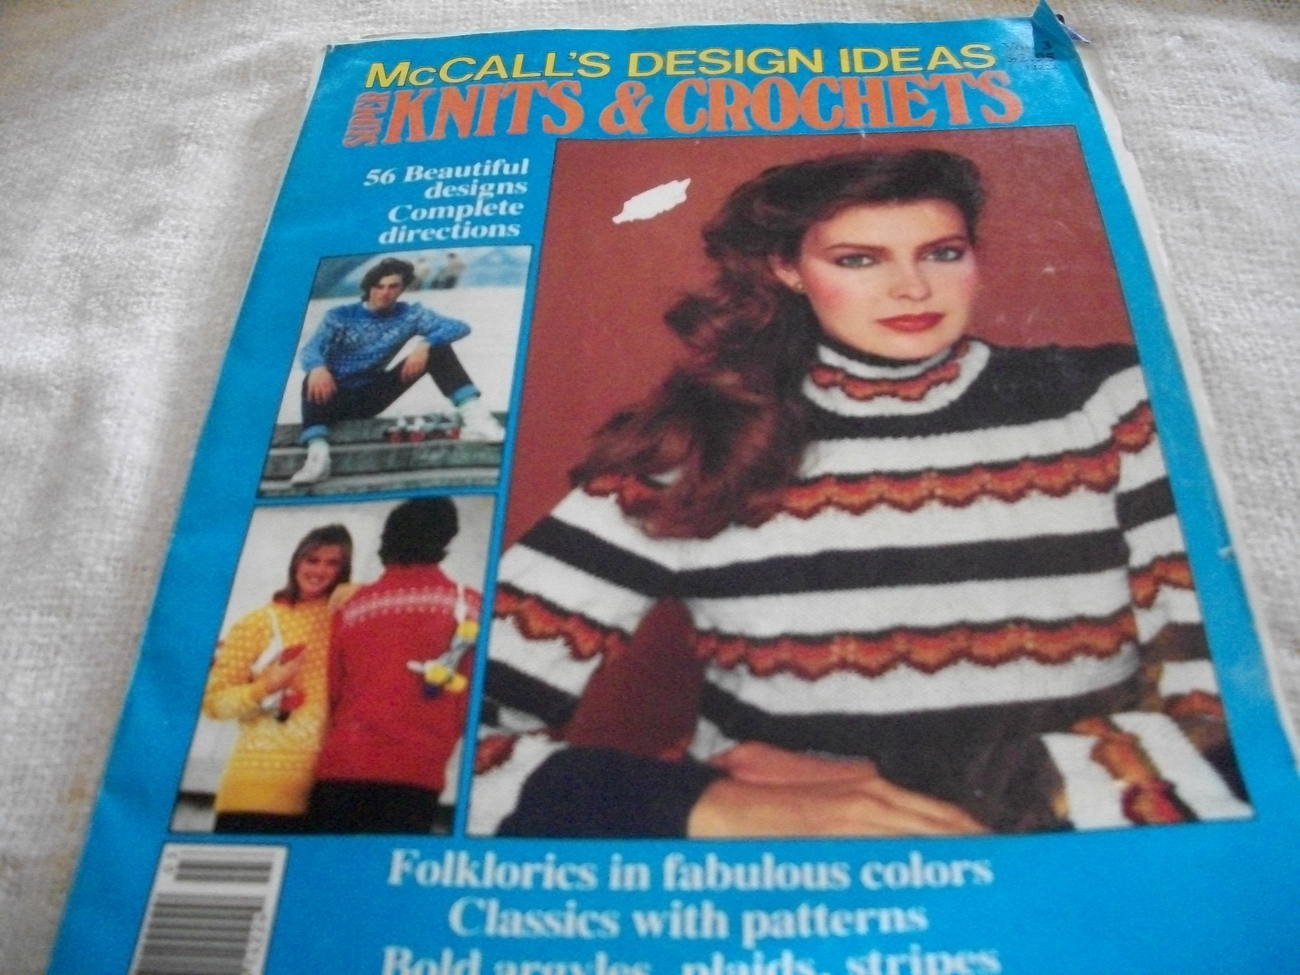 Primary image for McCall's Design Ideas Vol. 3: Super Knits & Crochets Magazine